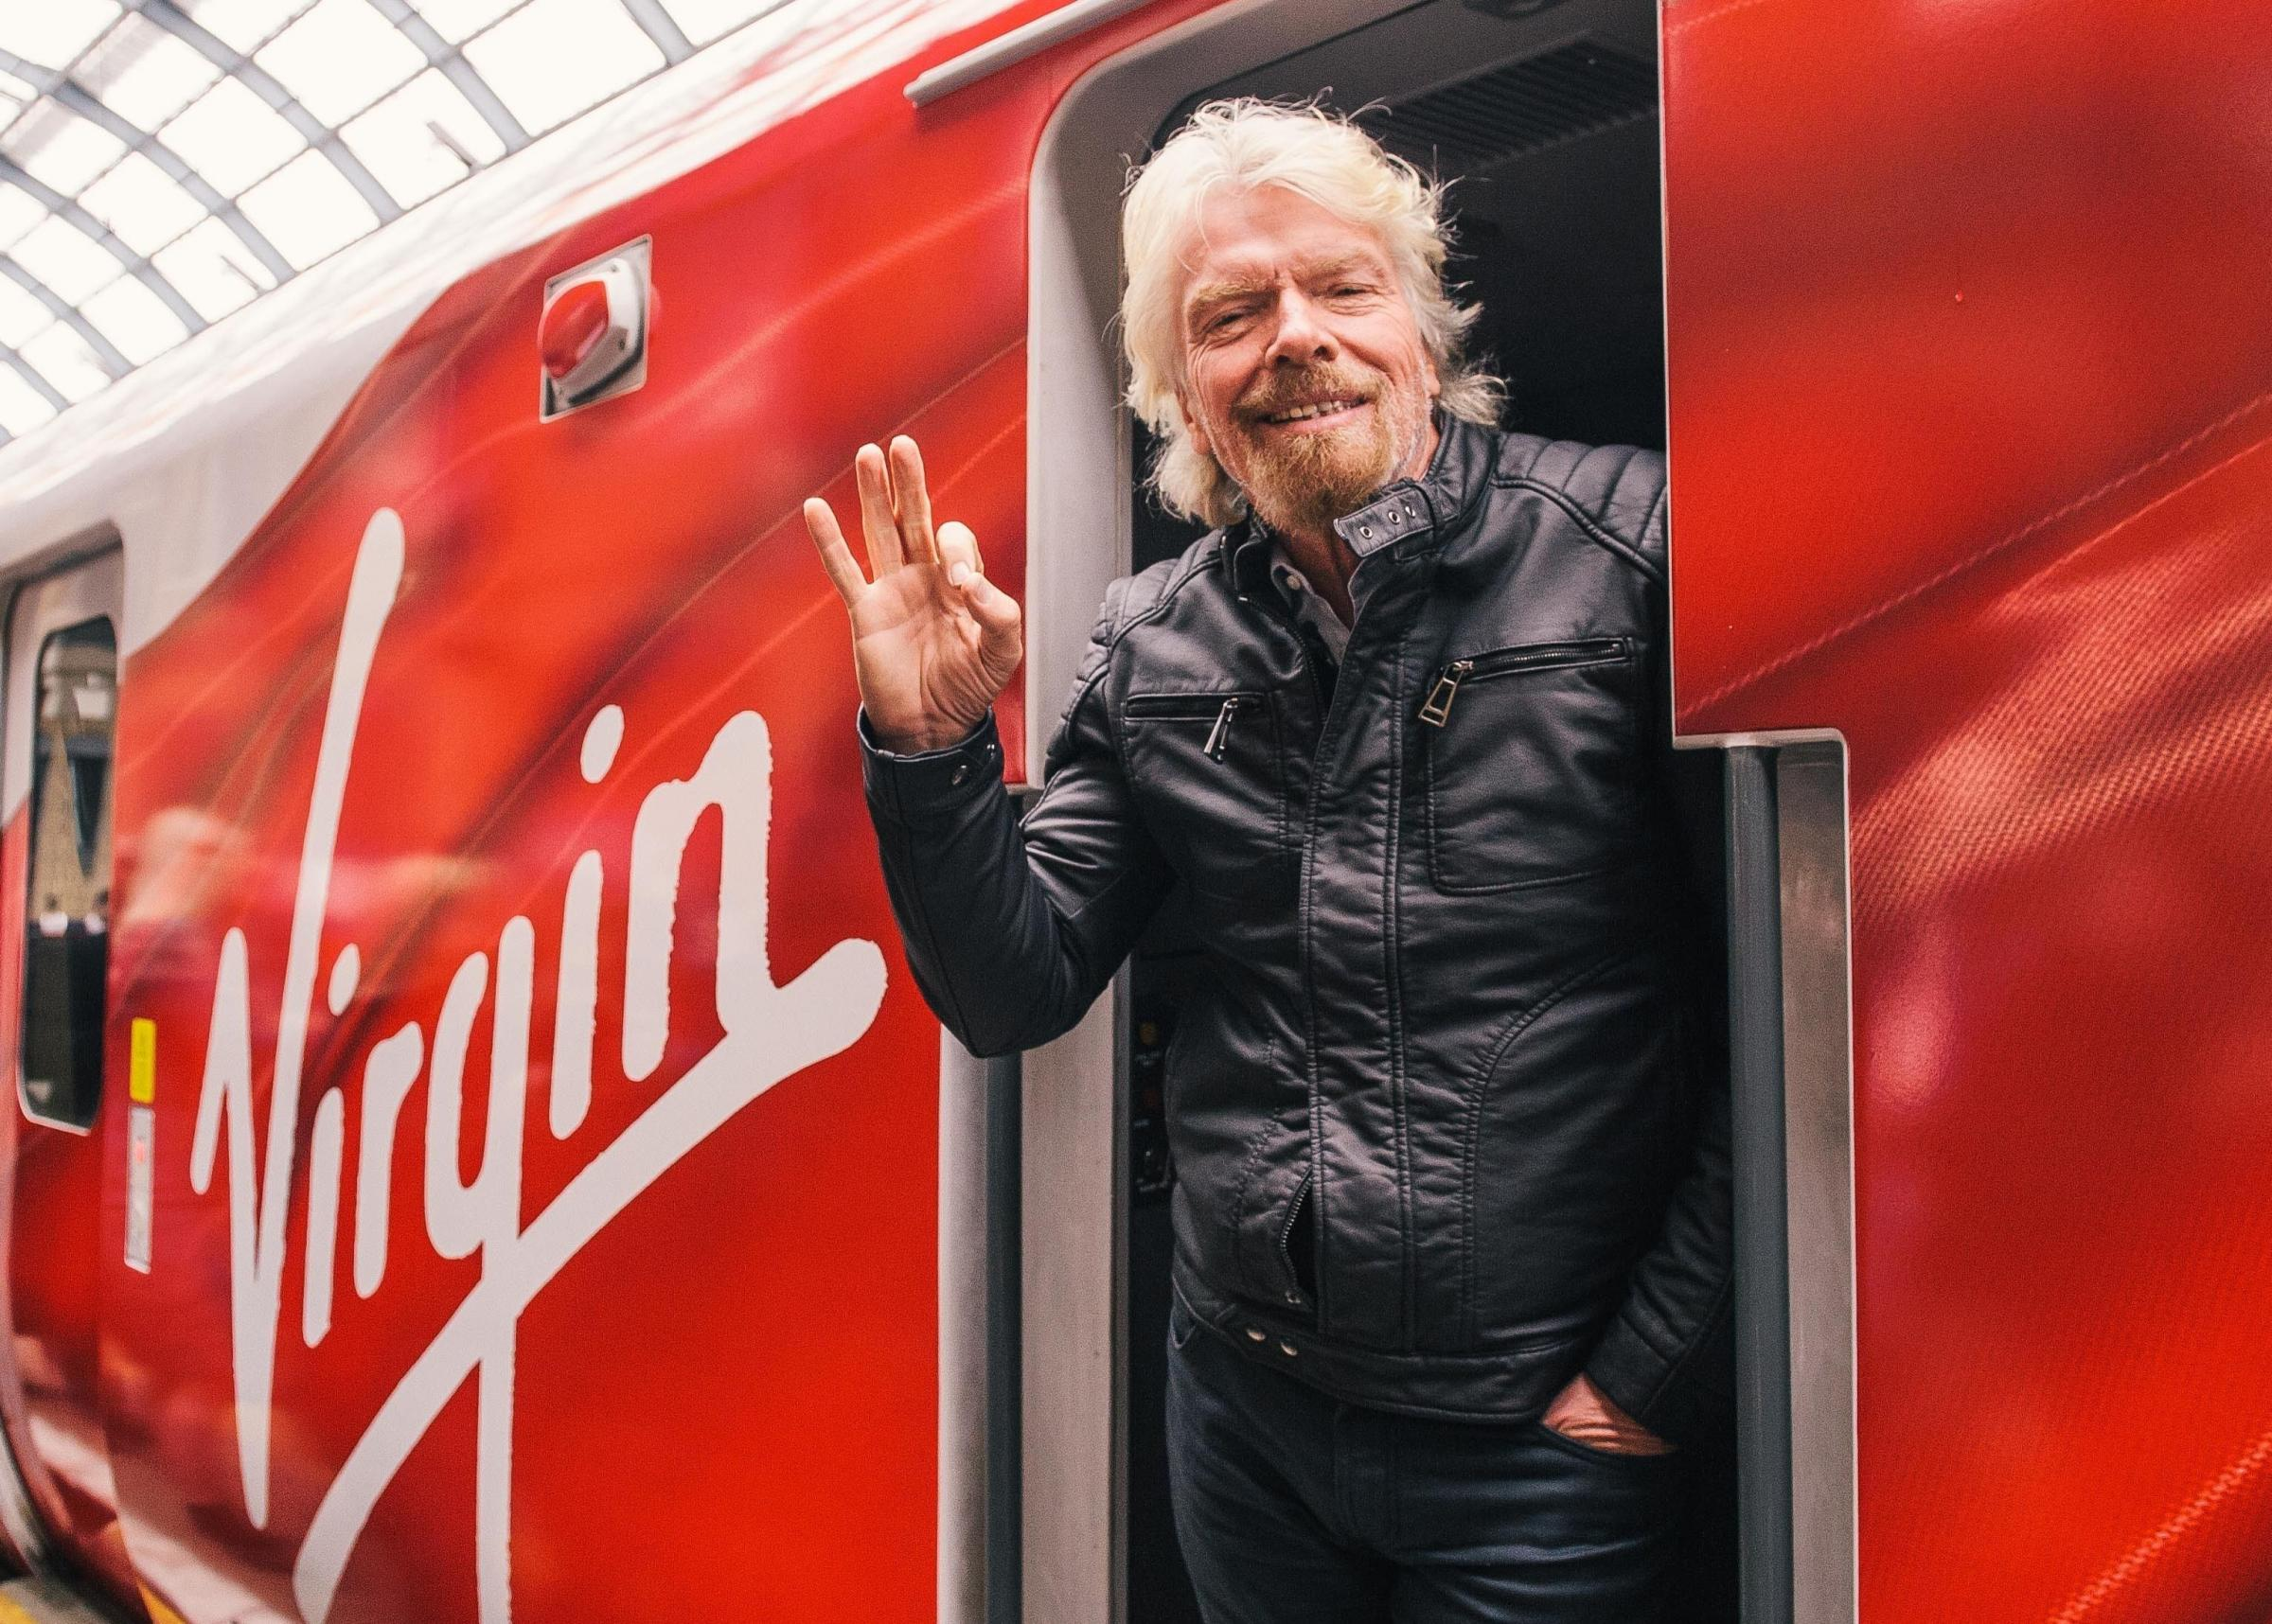 Richard Branson holds more than $5.1 billion, while living costs for ordinary workers are soaring